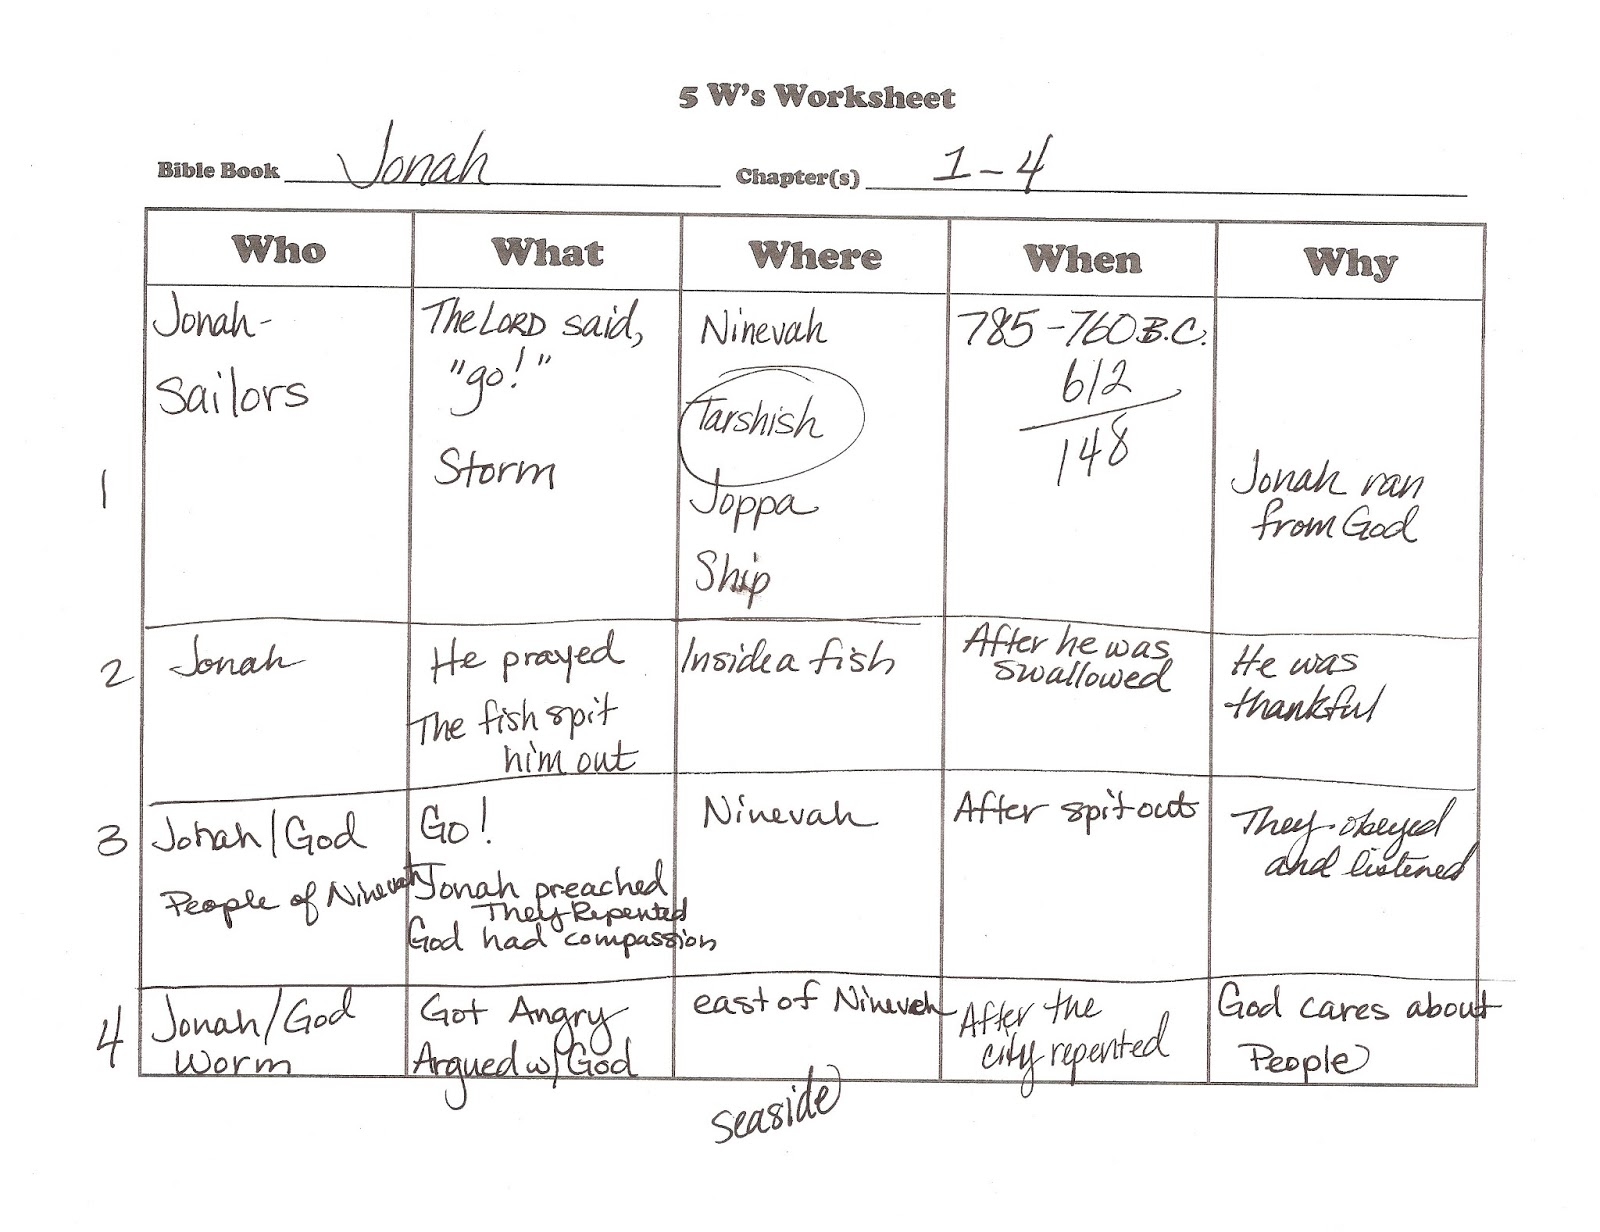 worksheet 5 W S Worksheet reflections basic bible study part 7 here is an example of how a 5ws worksheet could look when it filled out everyone in the class had their sheets differently